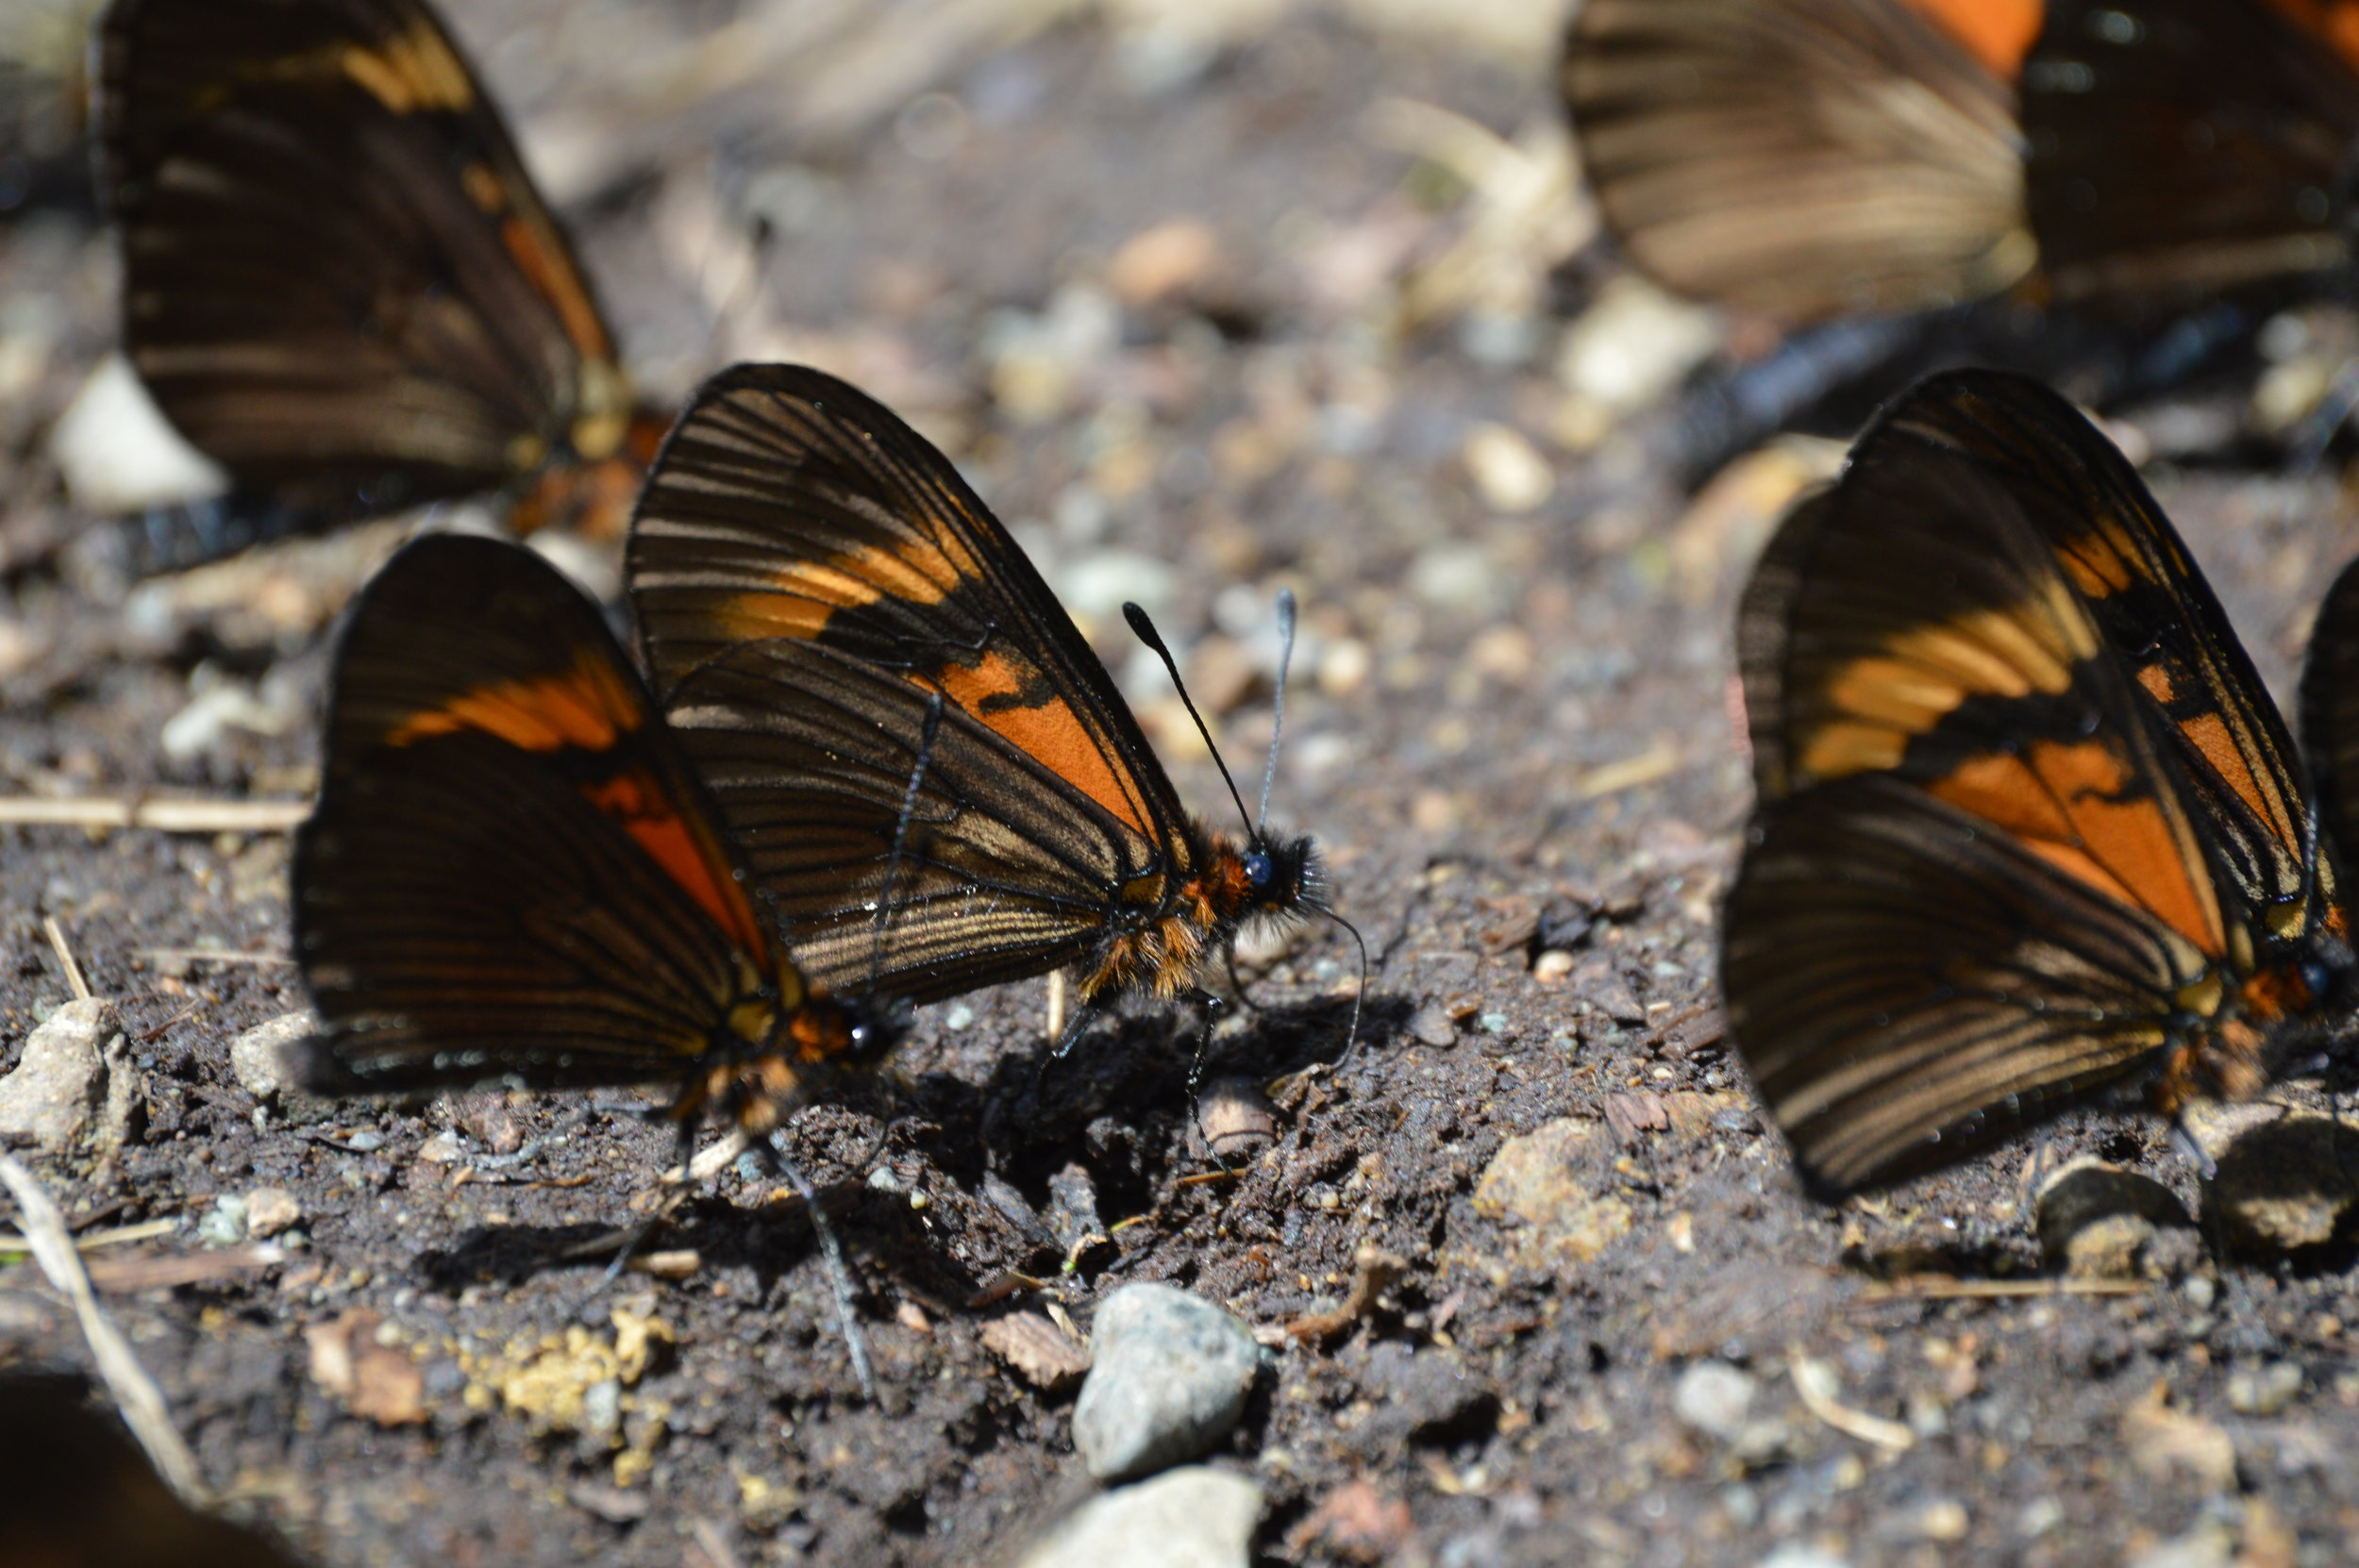 Butterflies on the path. Careful not to step on them!